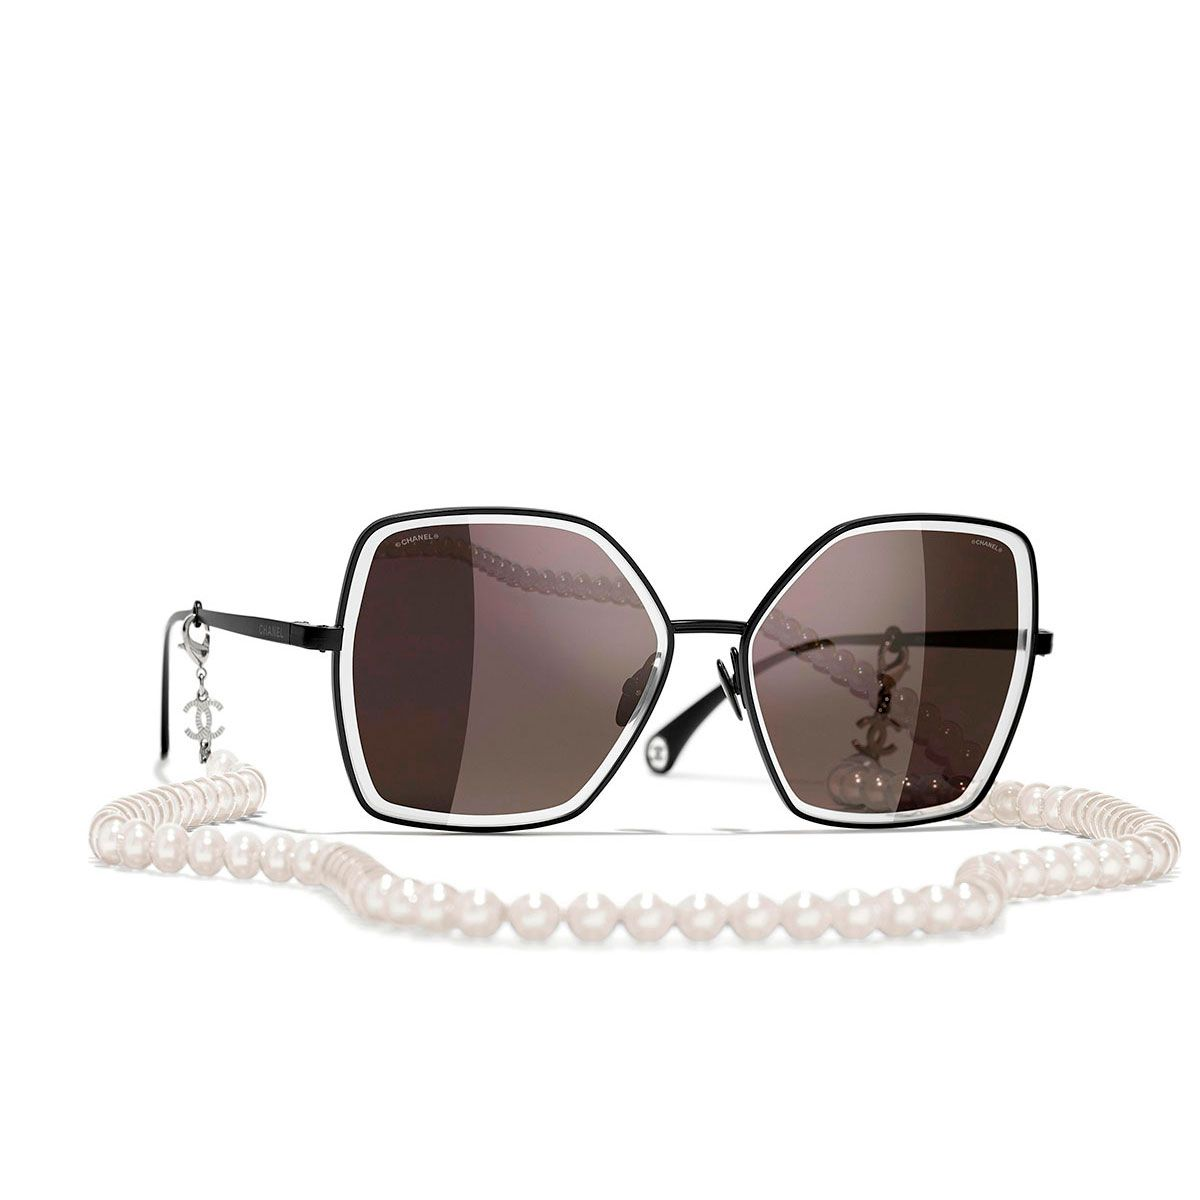 Butterfly Sunglasses 667 Sunglasses